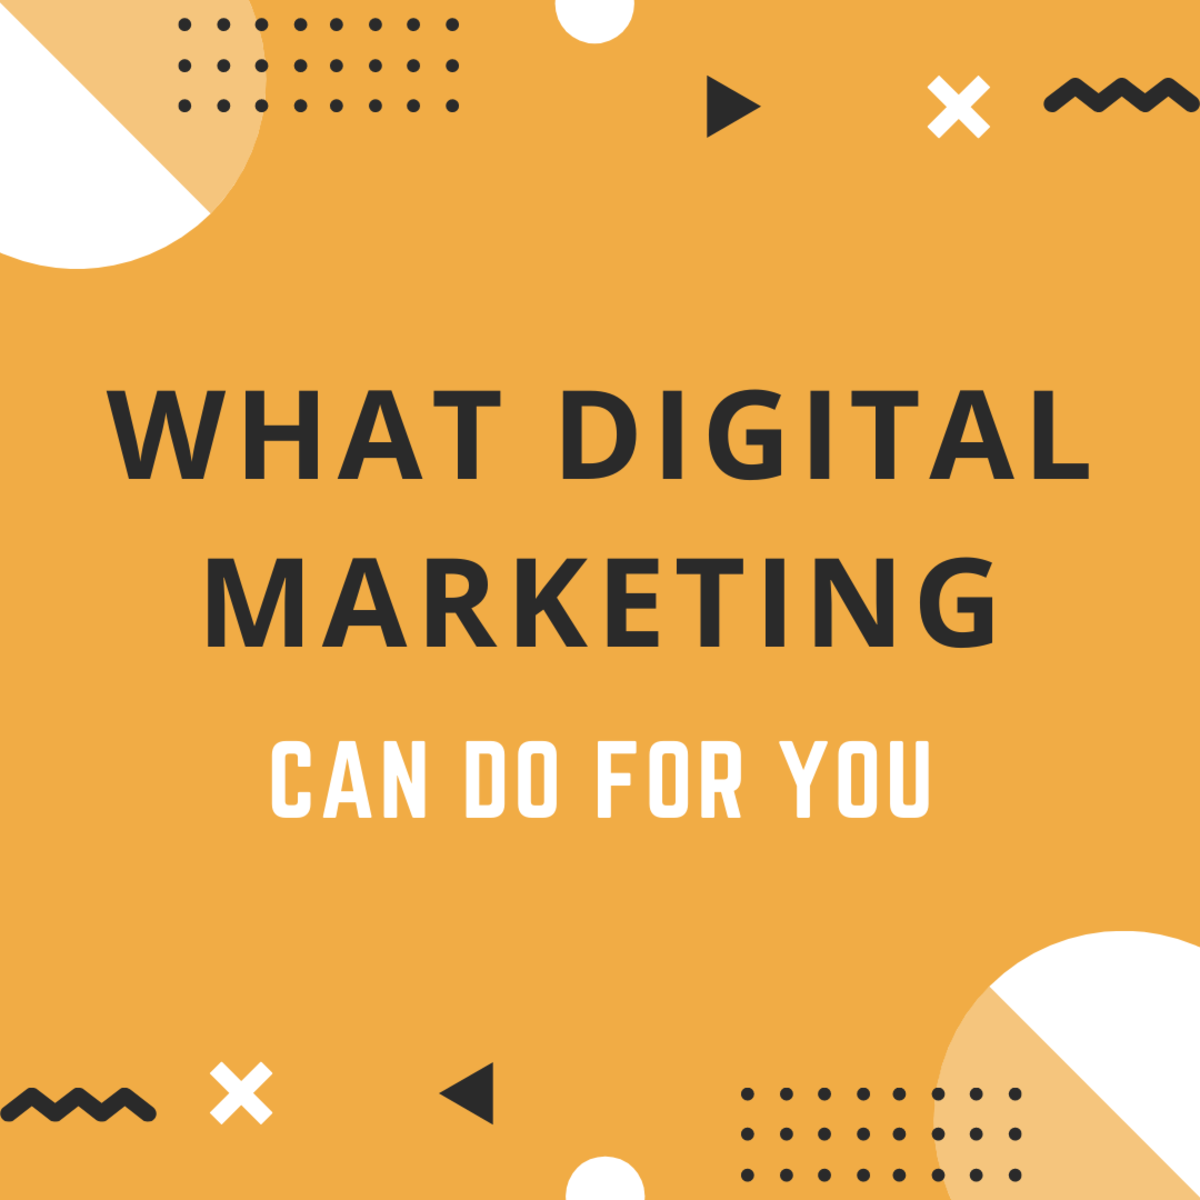 What Can Digital Marketing Do for Your Small Business?